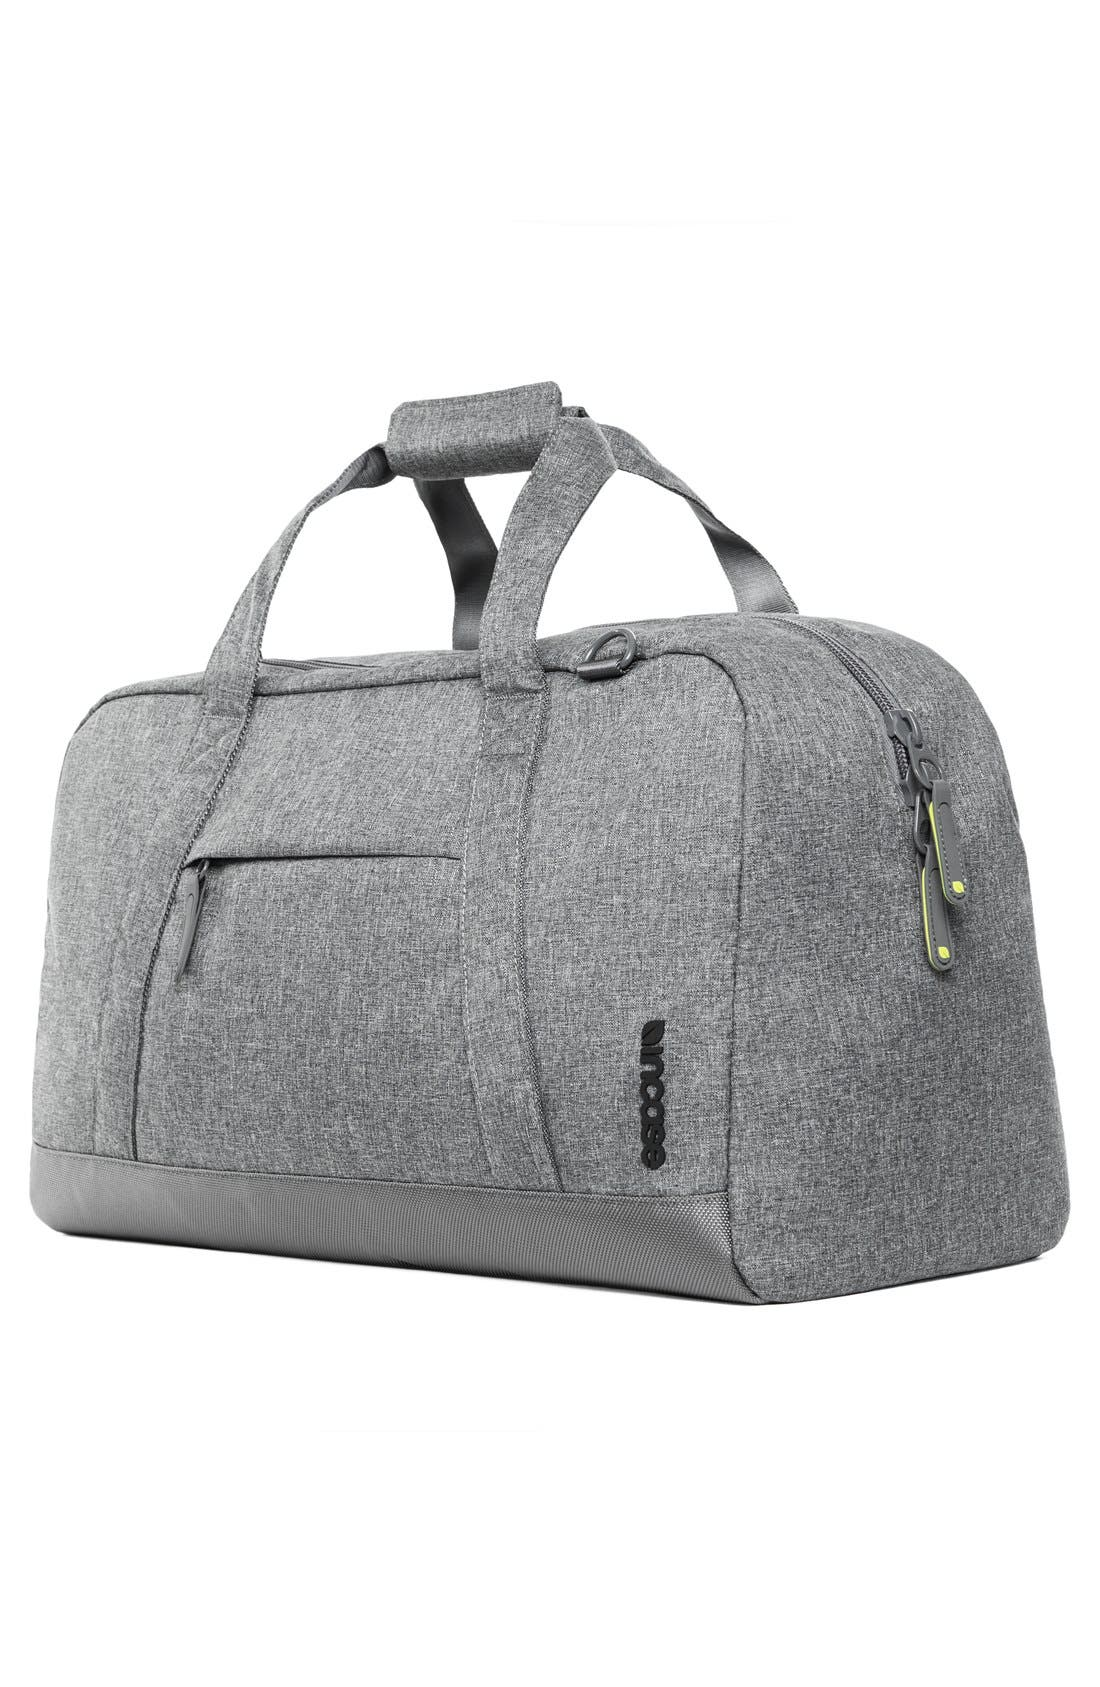 EO Duffel Bag,                             Alternate thumbnail 4, color,                             Heather Grey